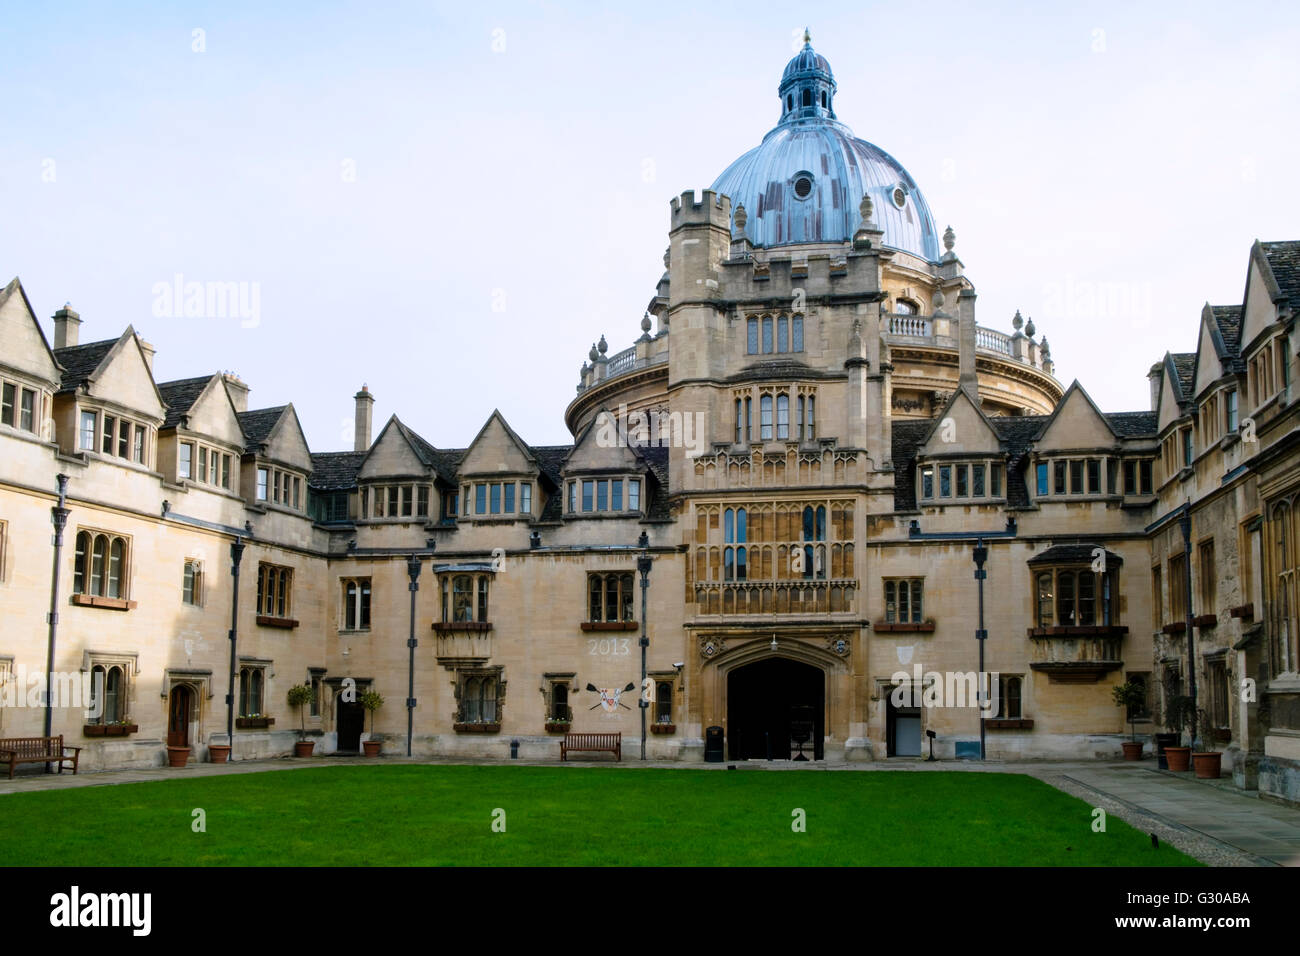 Brasenose College front quad, David Cameron's college, and the Radcliffe Camera, Oxford, Oxfordshire, England, - Stock Image